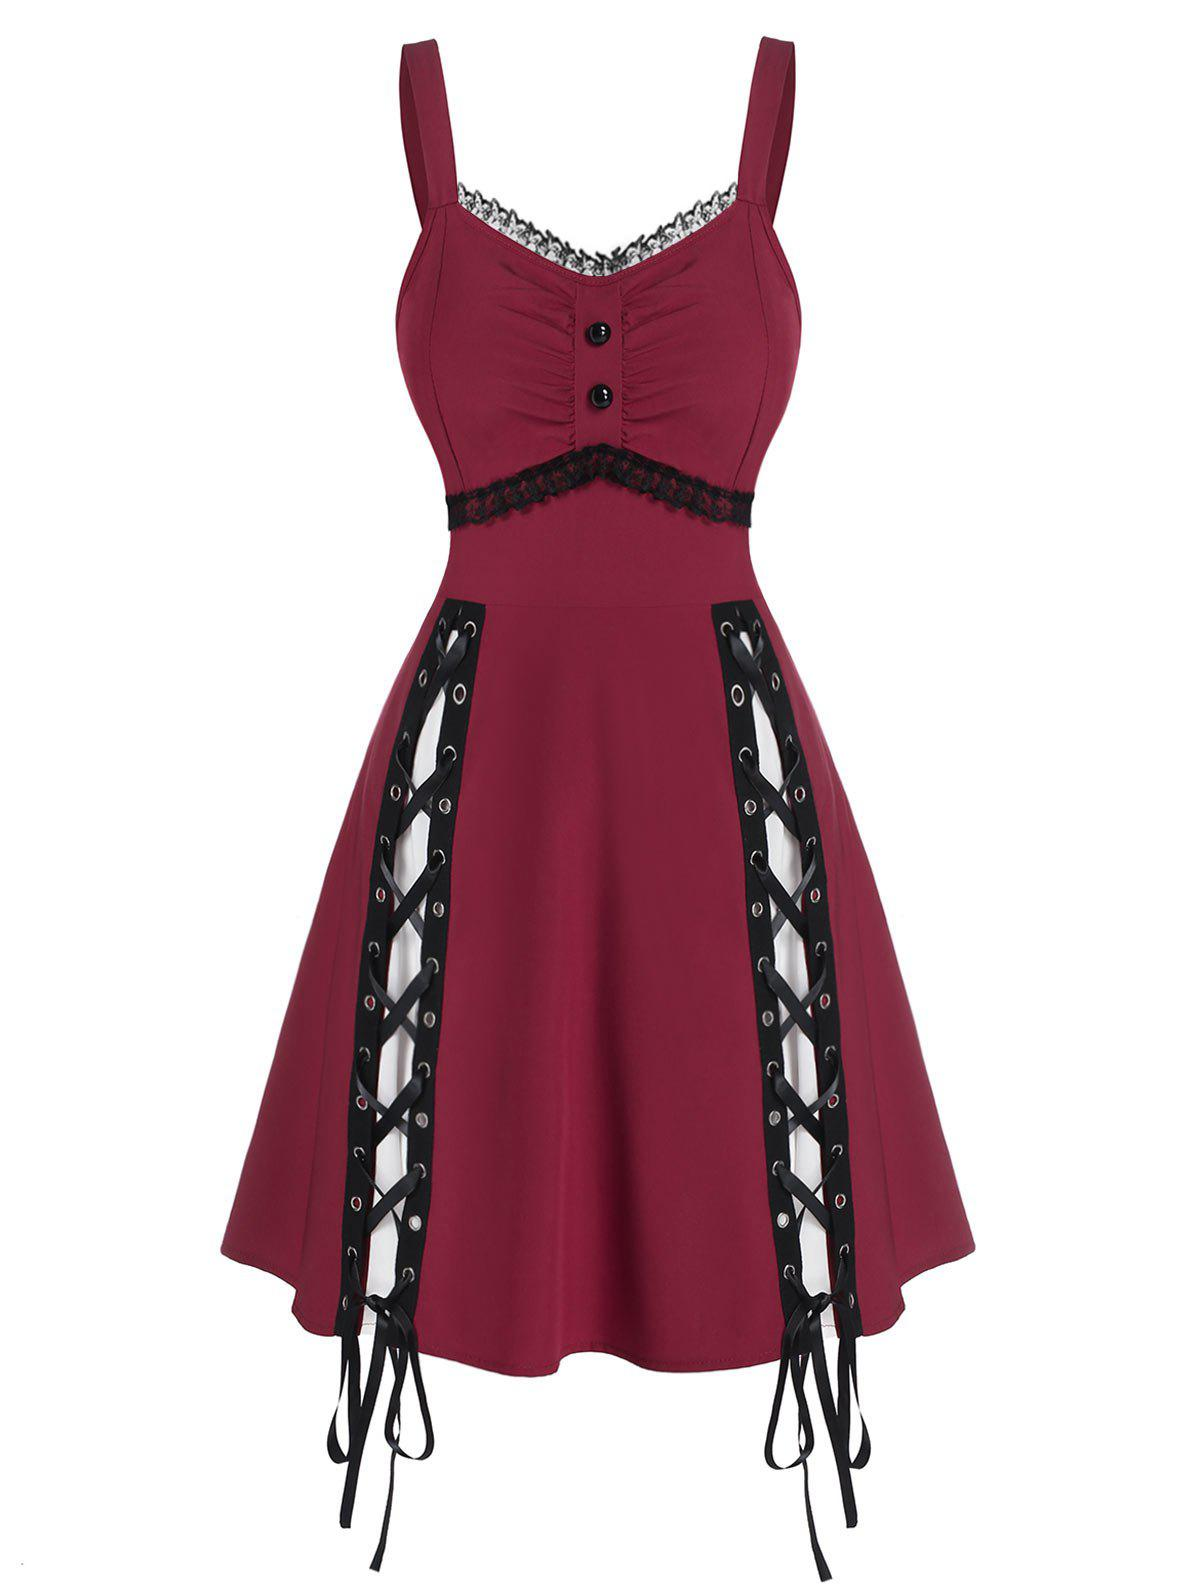 Hot Lace Panel Sleeveless Lace-up Gothic Dress